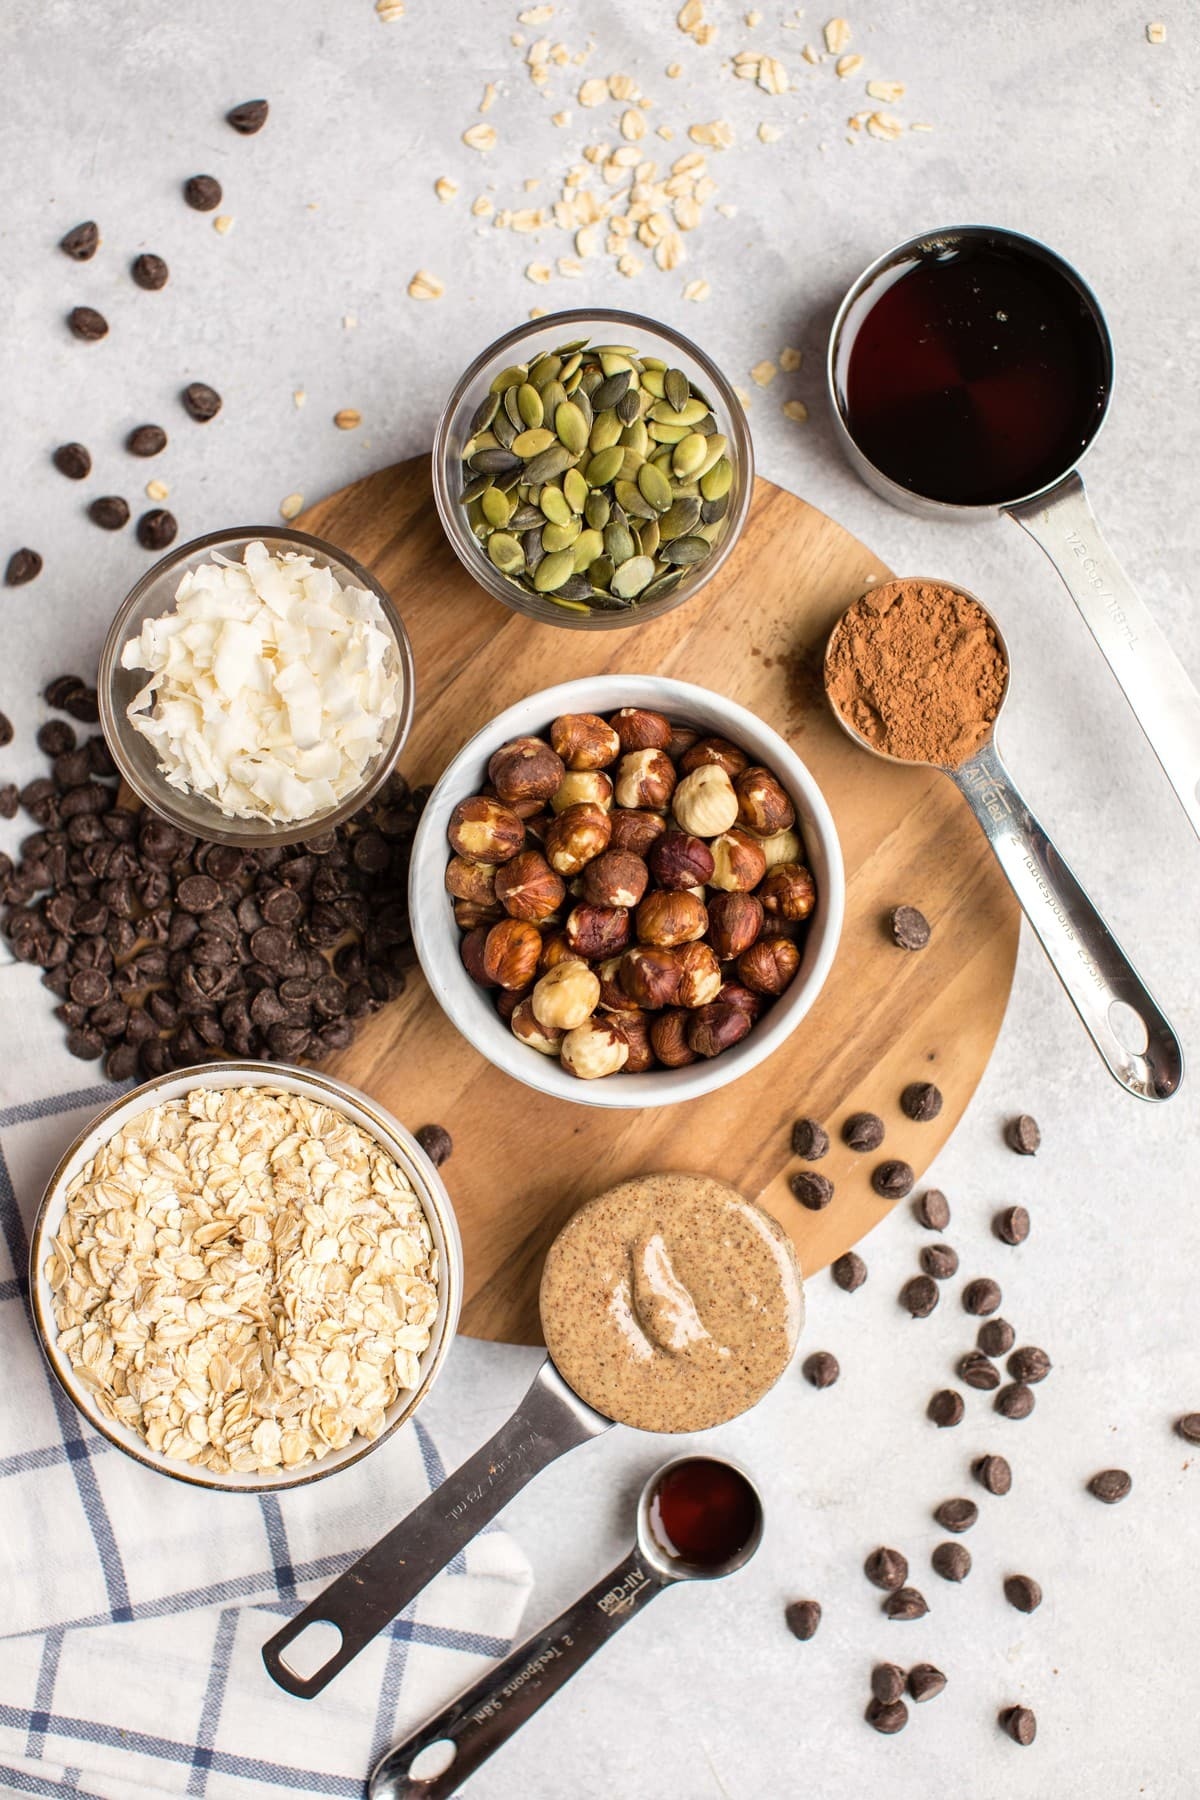 ingredients for chocolate hazelnut granola in small cups and bowls on round wooden cutting board with striped blue and white towel